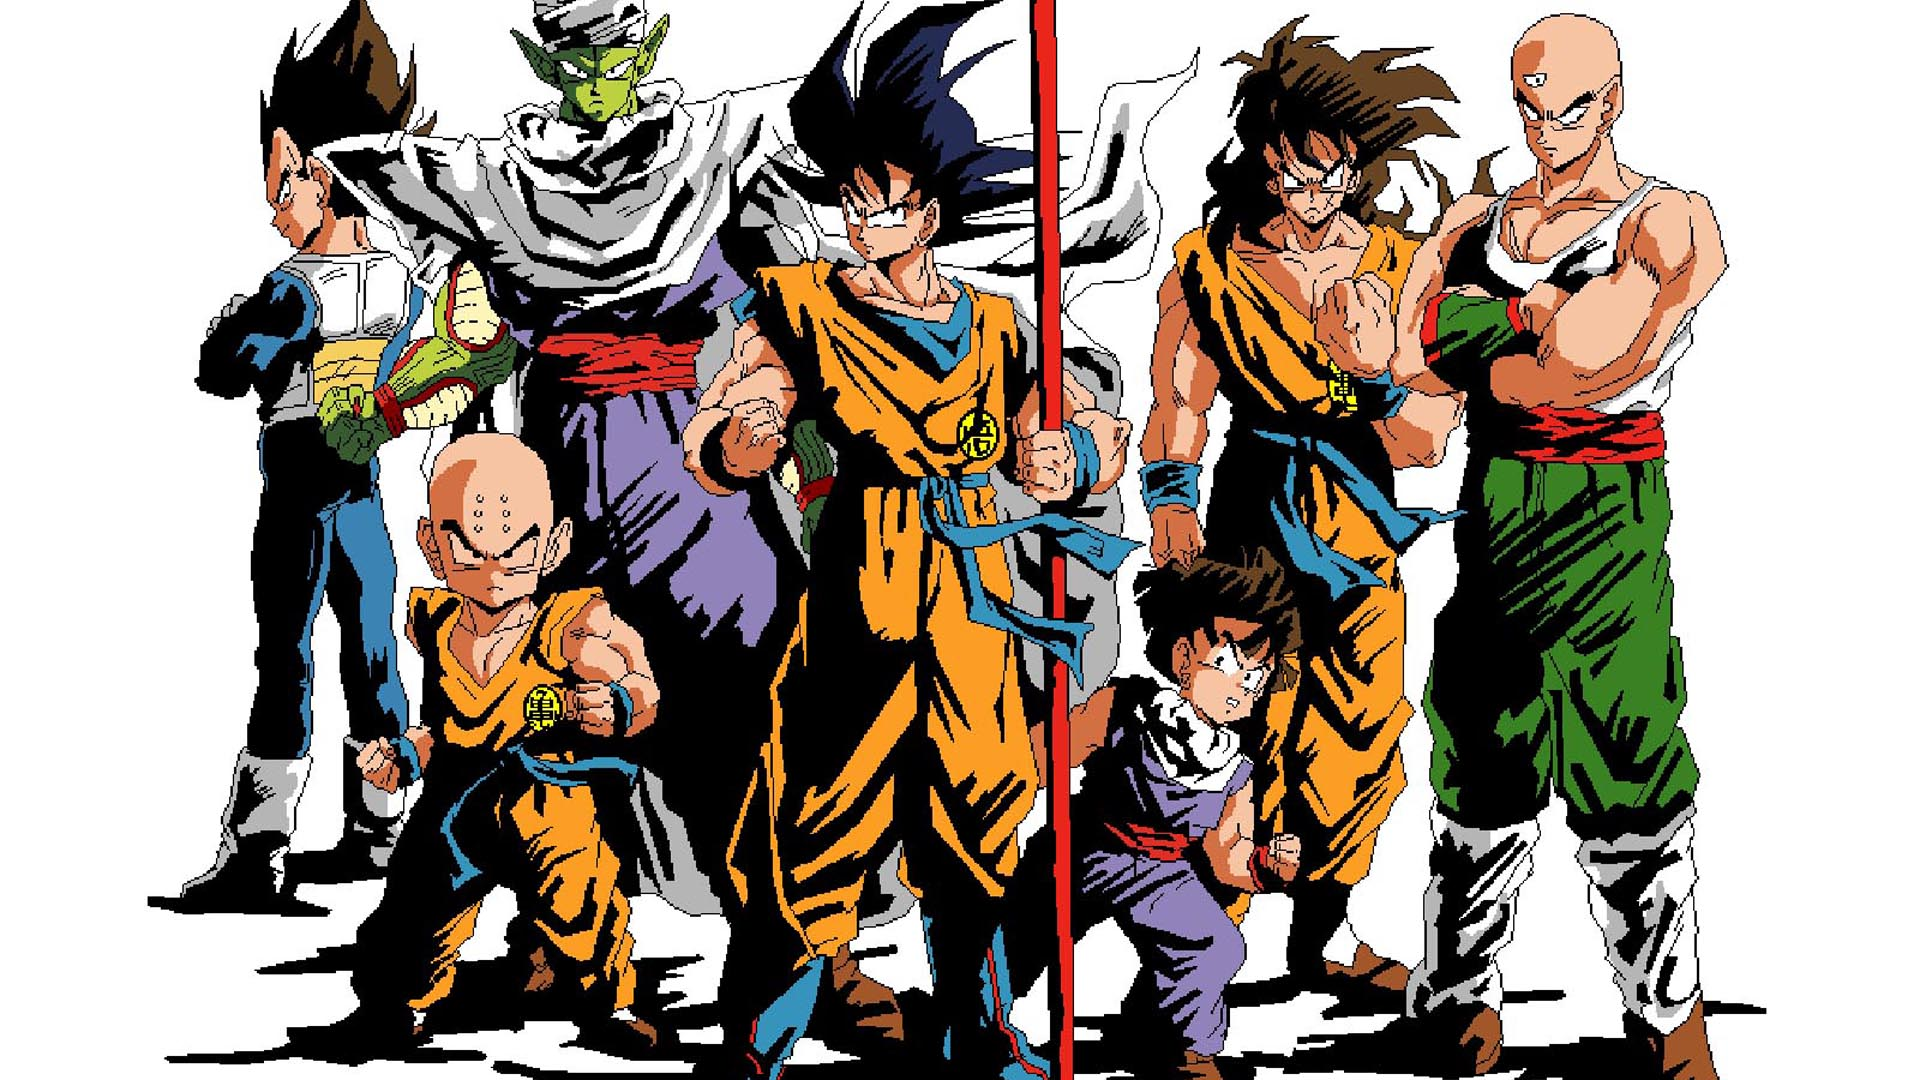 Dragonball Wallpaper 1920x1080 Wallpapers 1920x1080 1920x1080